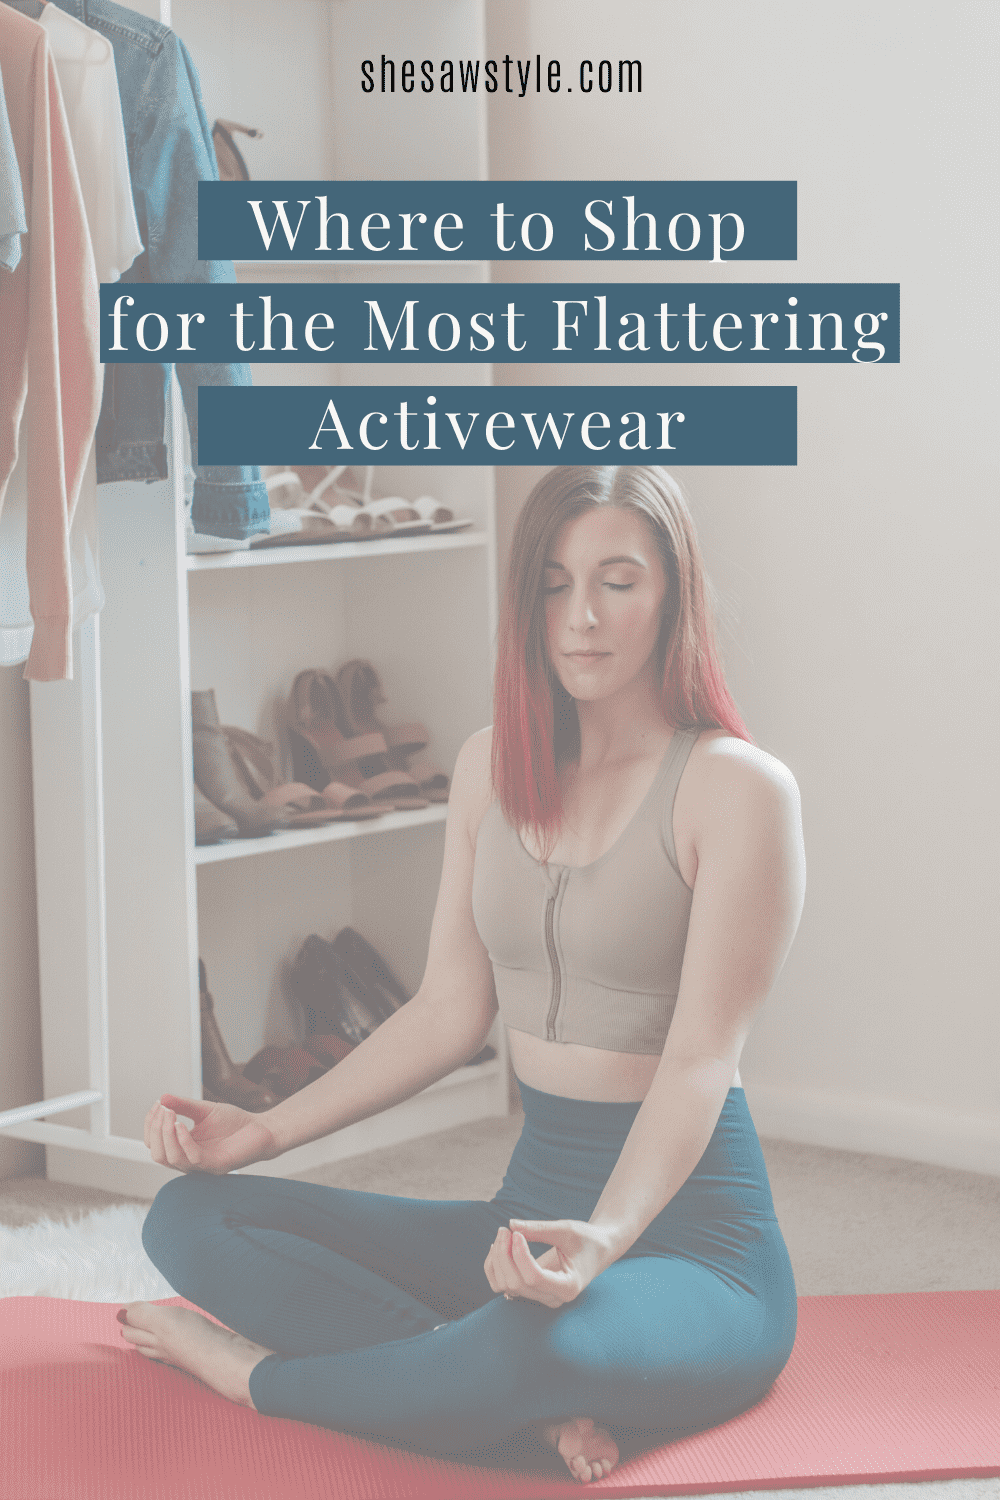 How to Get Extra Creative With Your Athleisure | She Saw Style